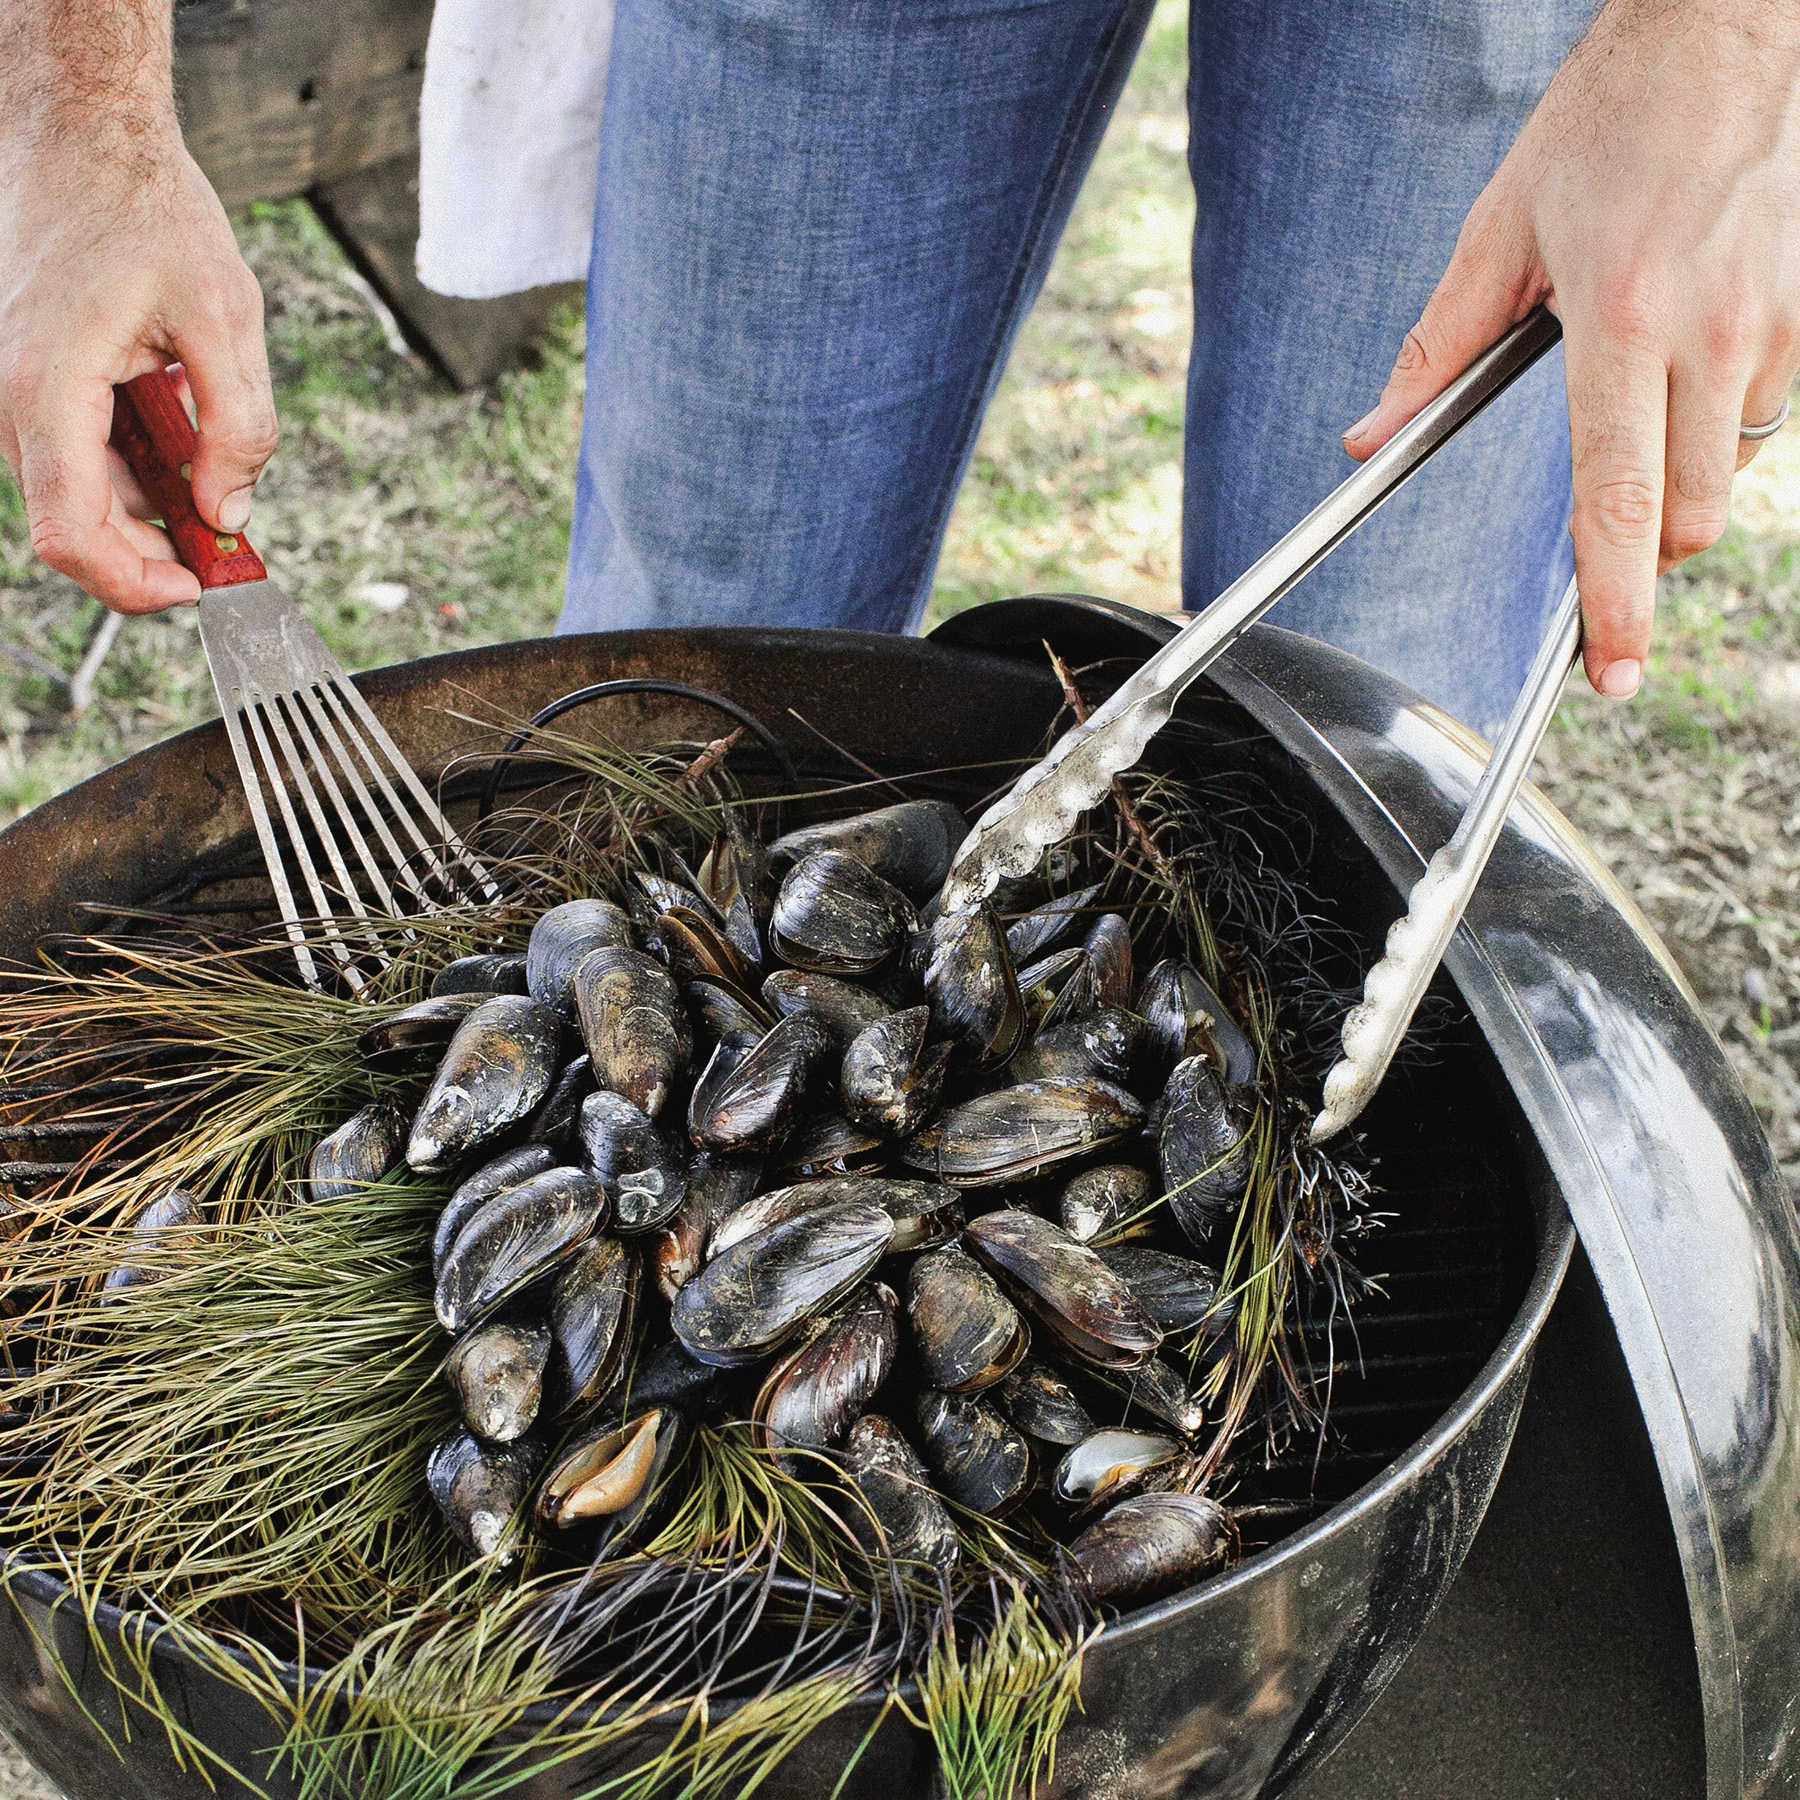 pine bough-grilled mussels with aioli